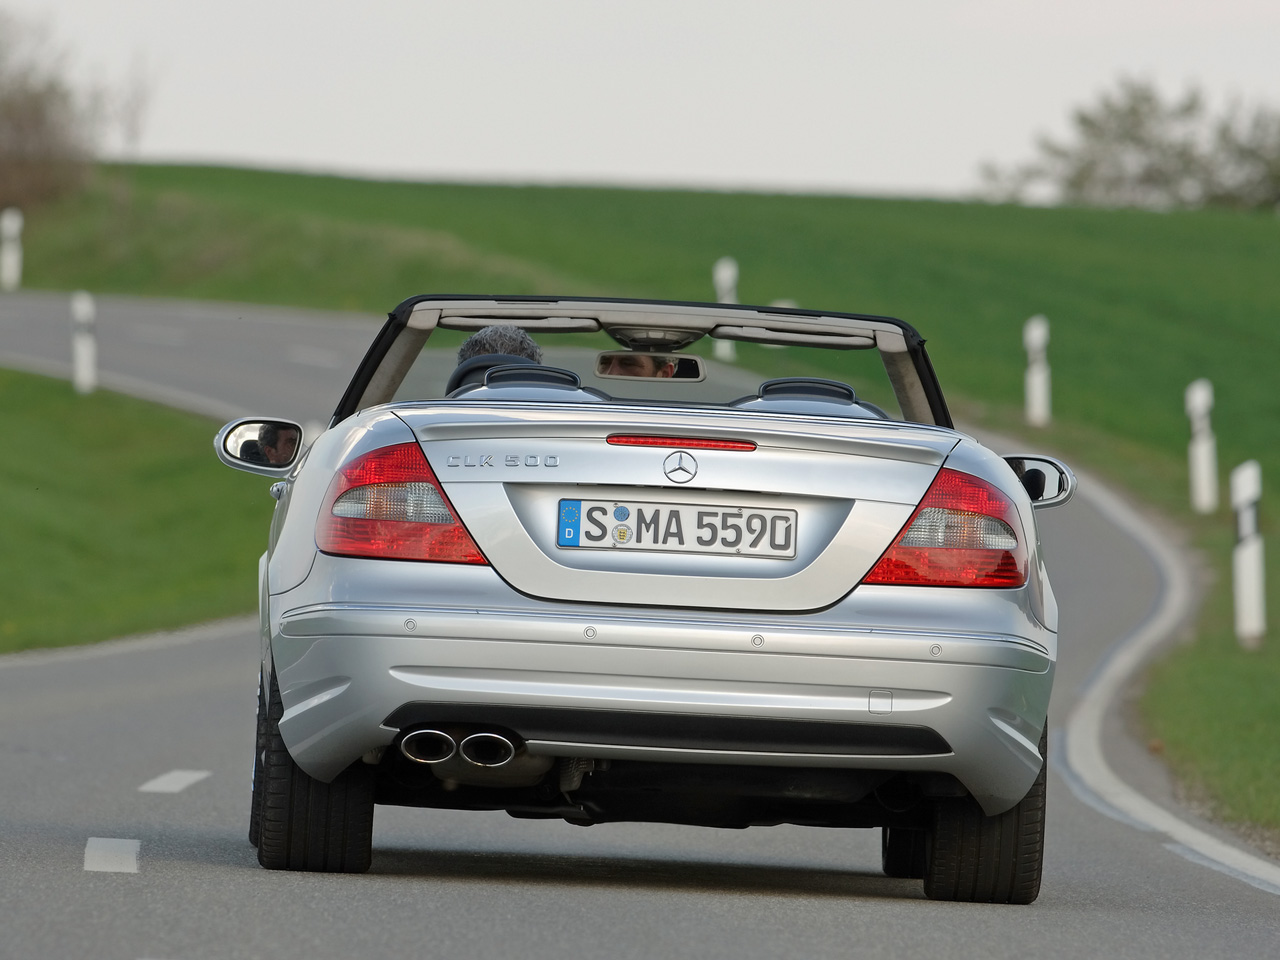 Mercedes-Benz CLK 500 photo 10